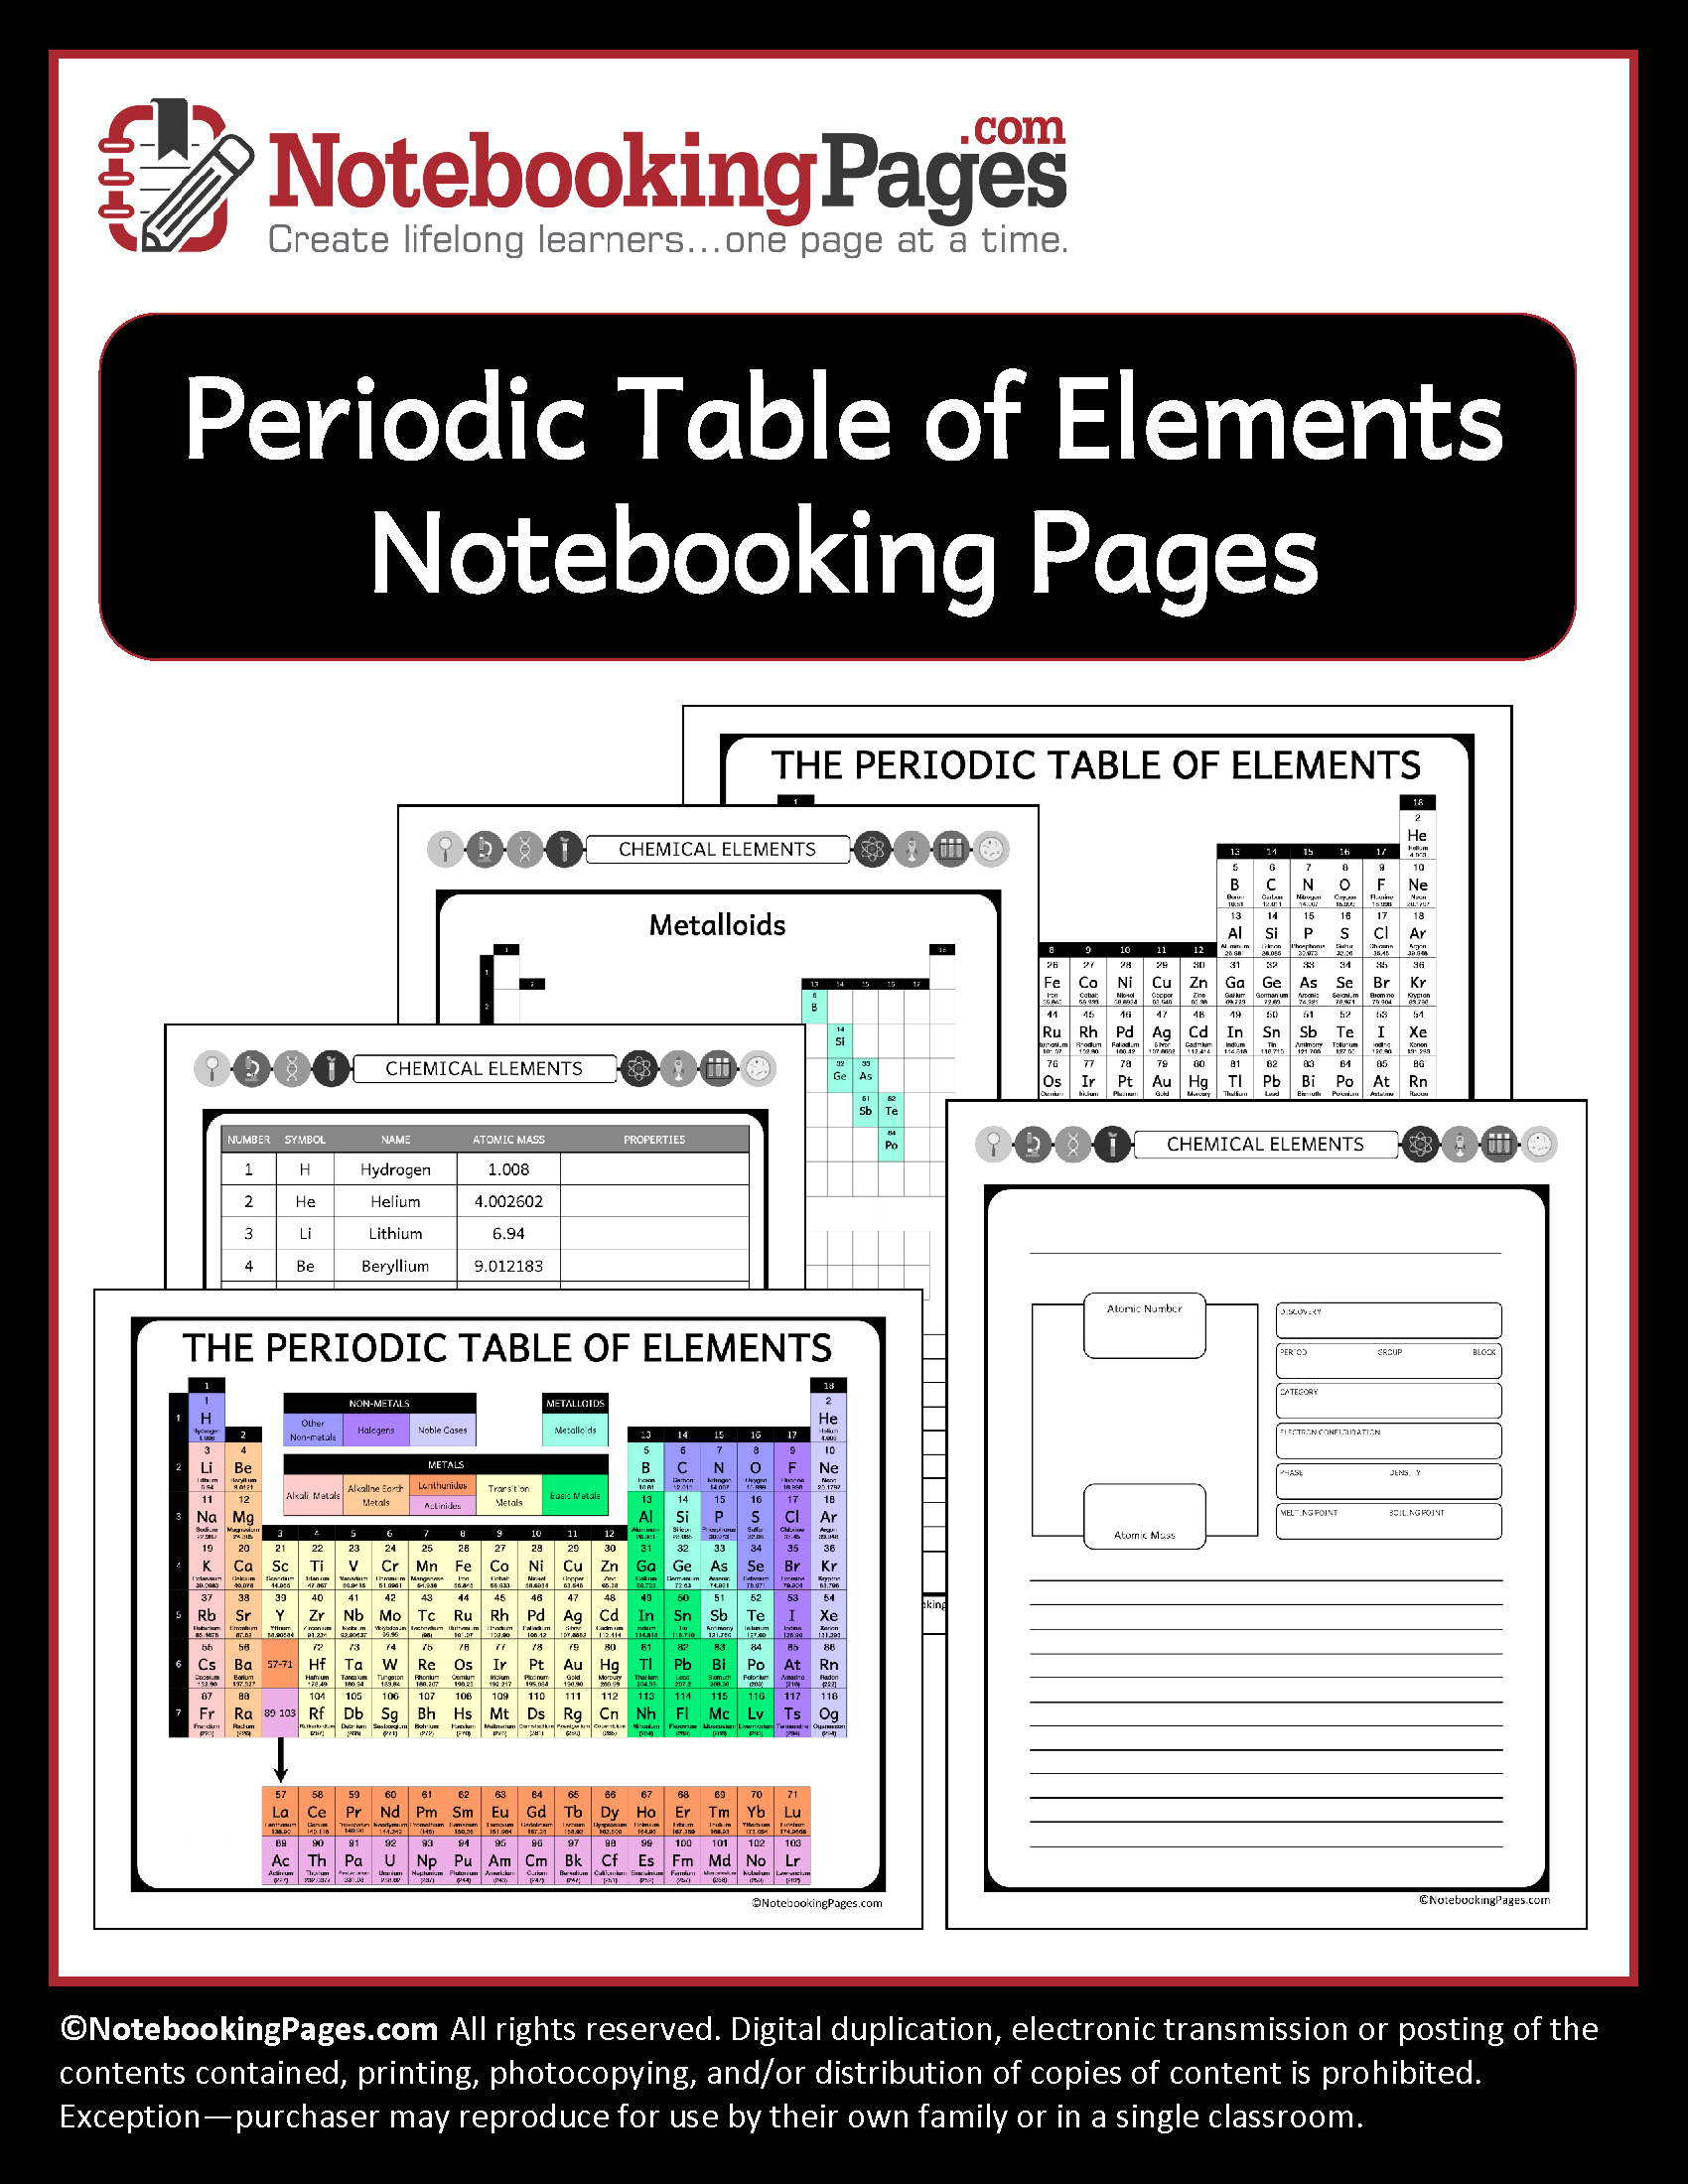 Periodic Table of Elements Notebooking Pages